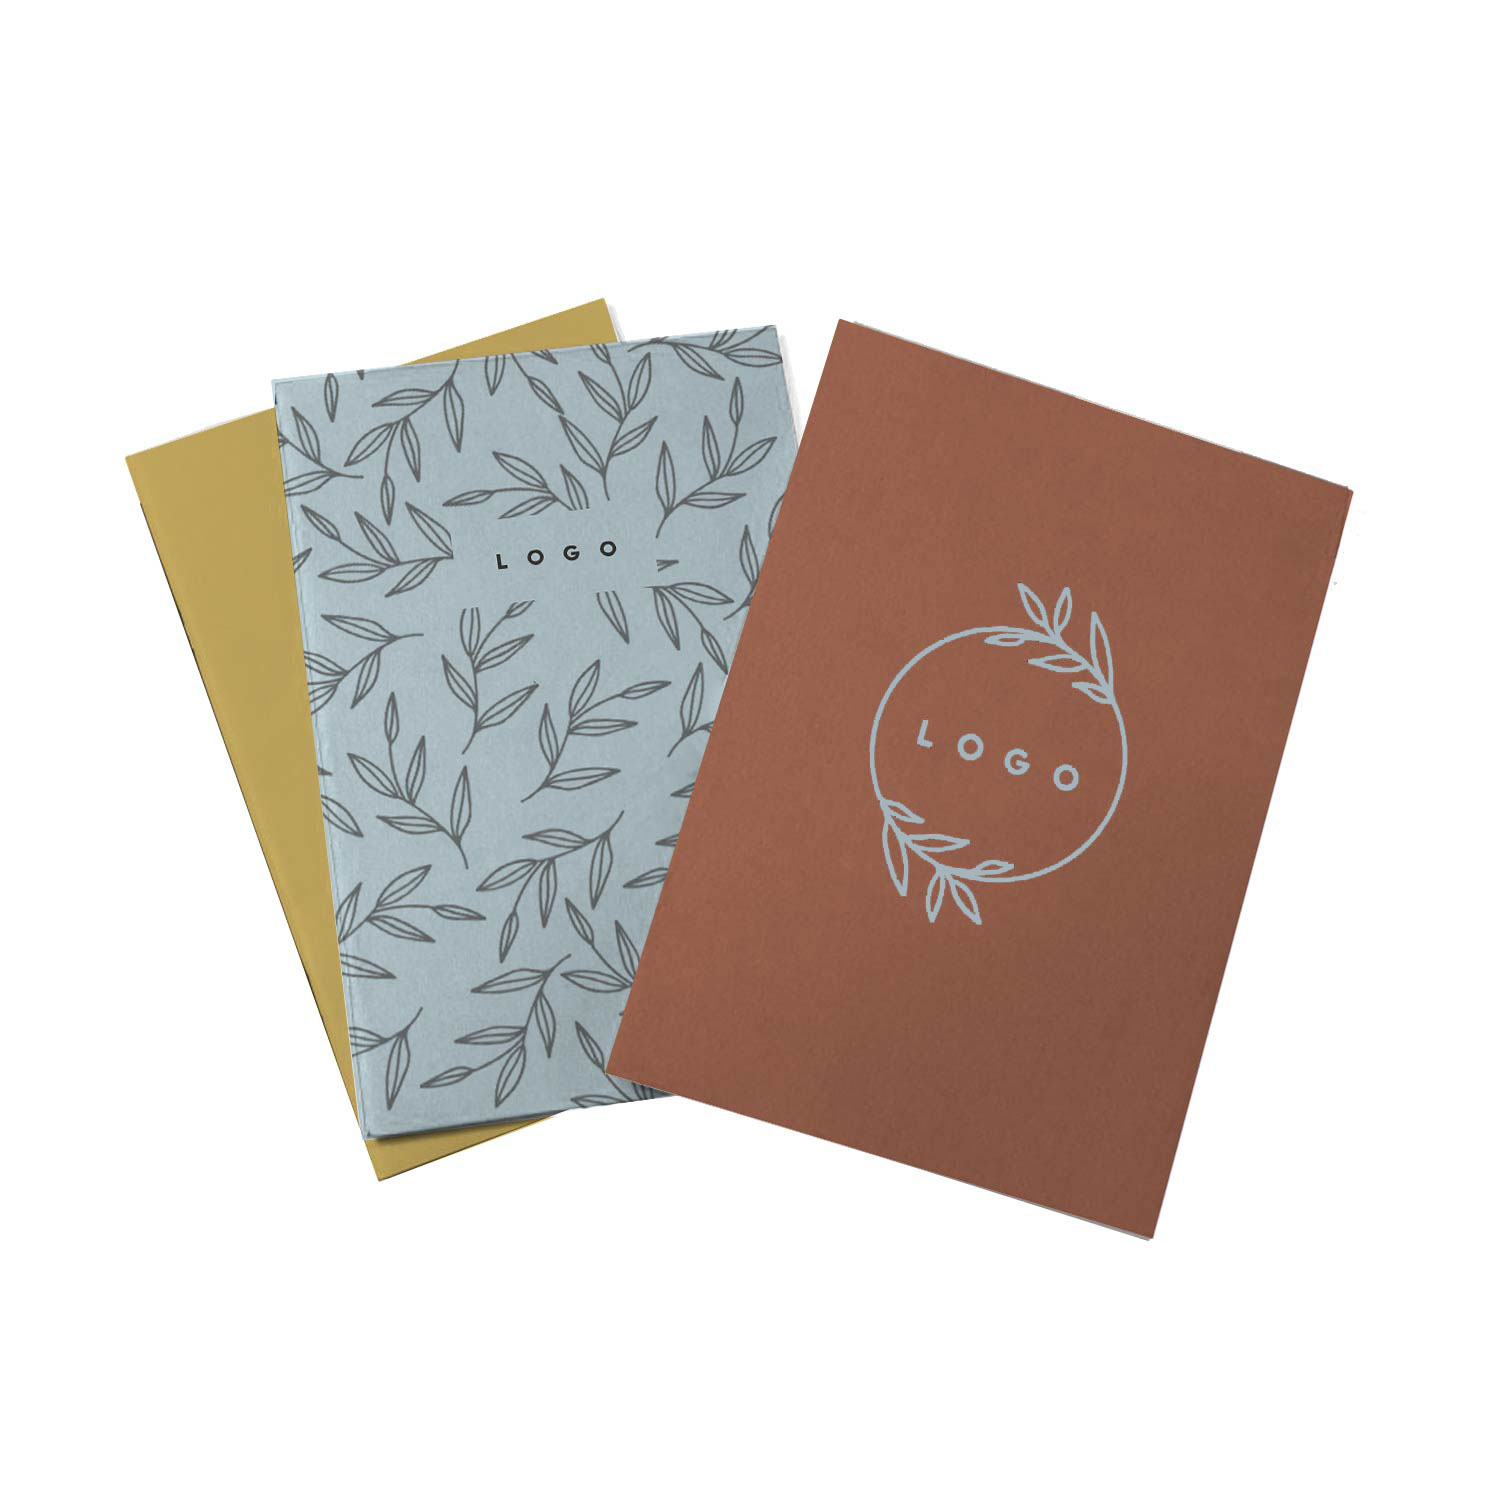 287066 eco notebook 3 pack full color imprint on each notebook